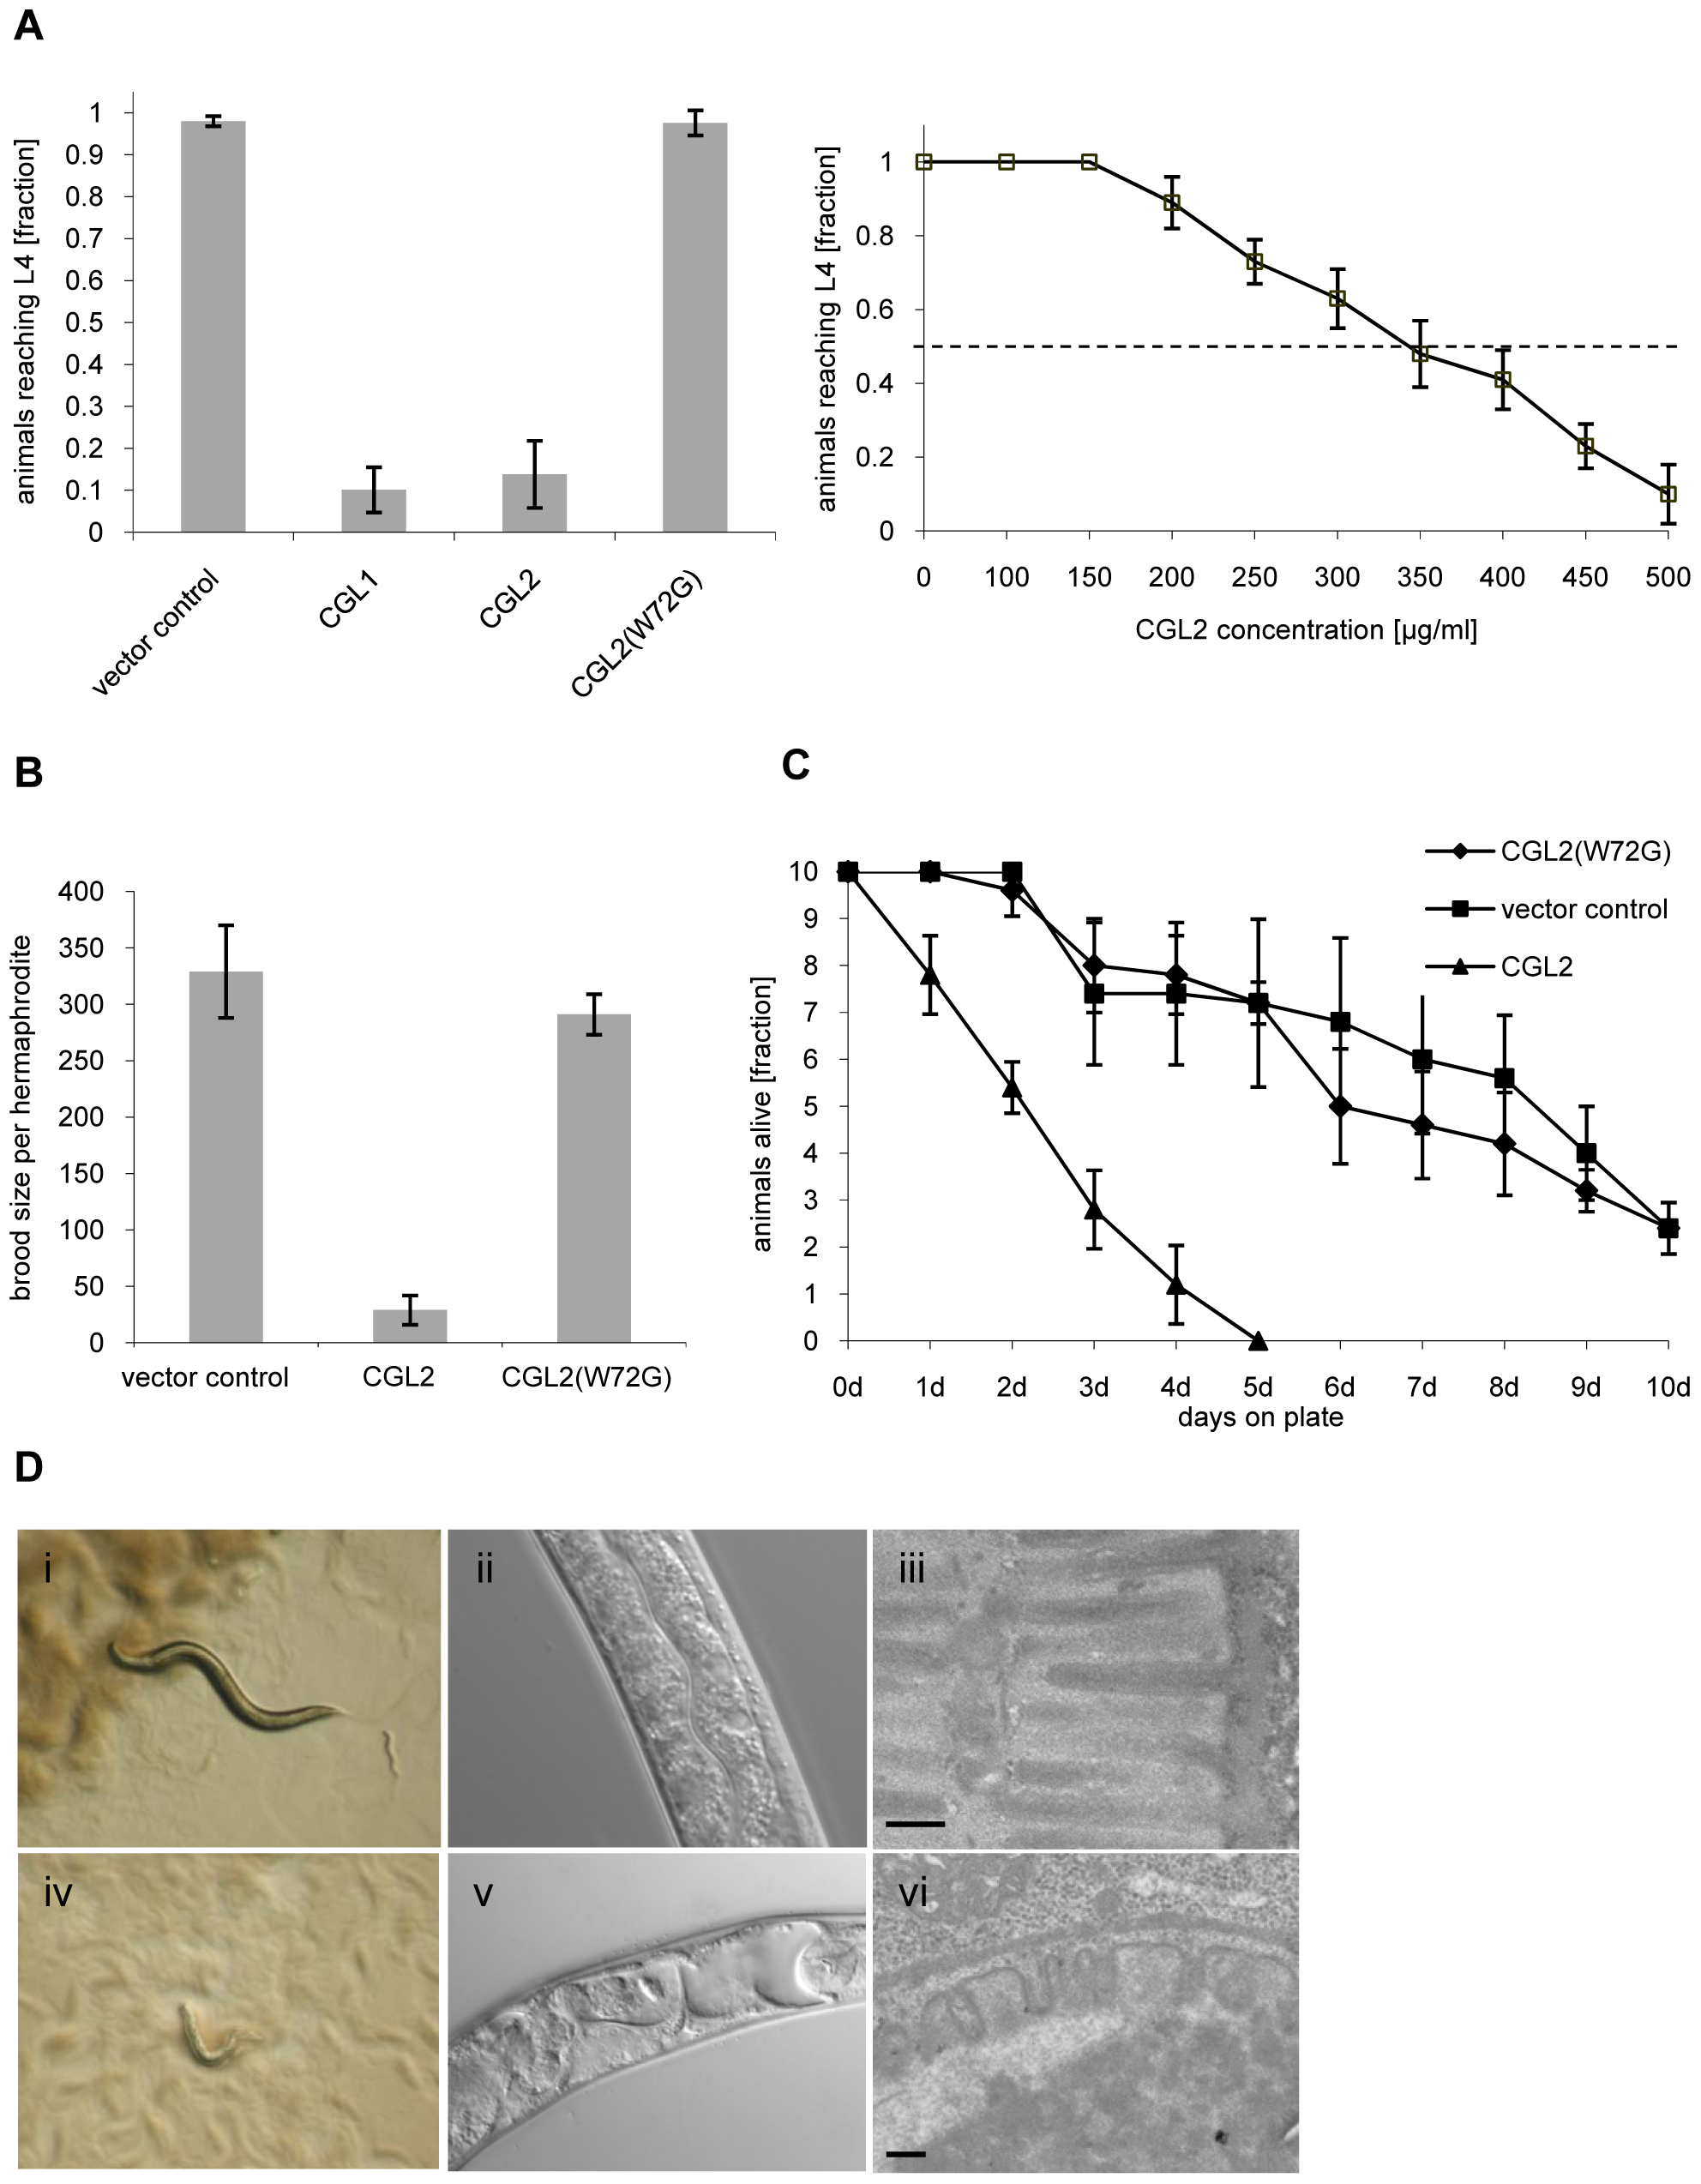 Dose and carbohydrate-binding dependent toxicity of <i>C. cinerea</i> galectin CGL2 towards <i>C. elegans</i>.